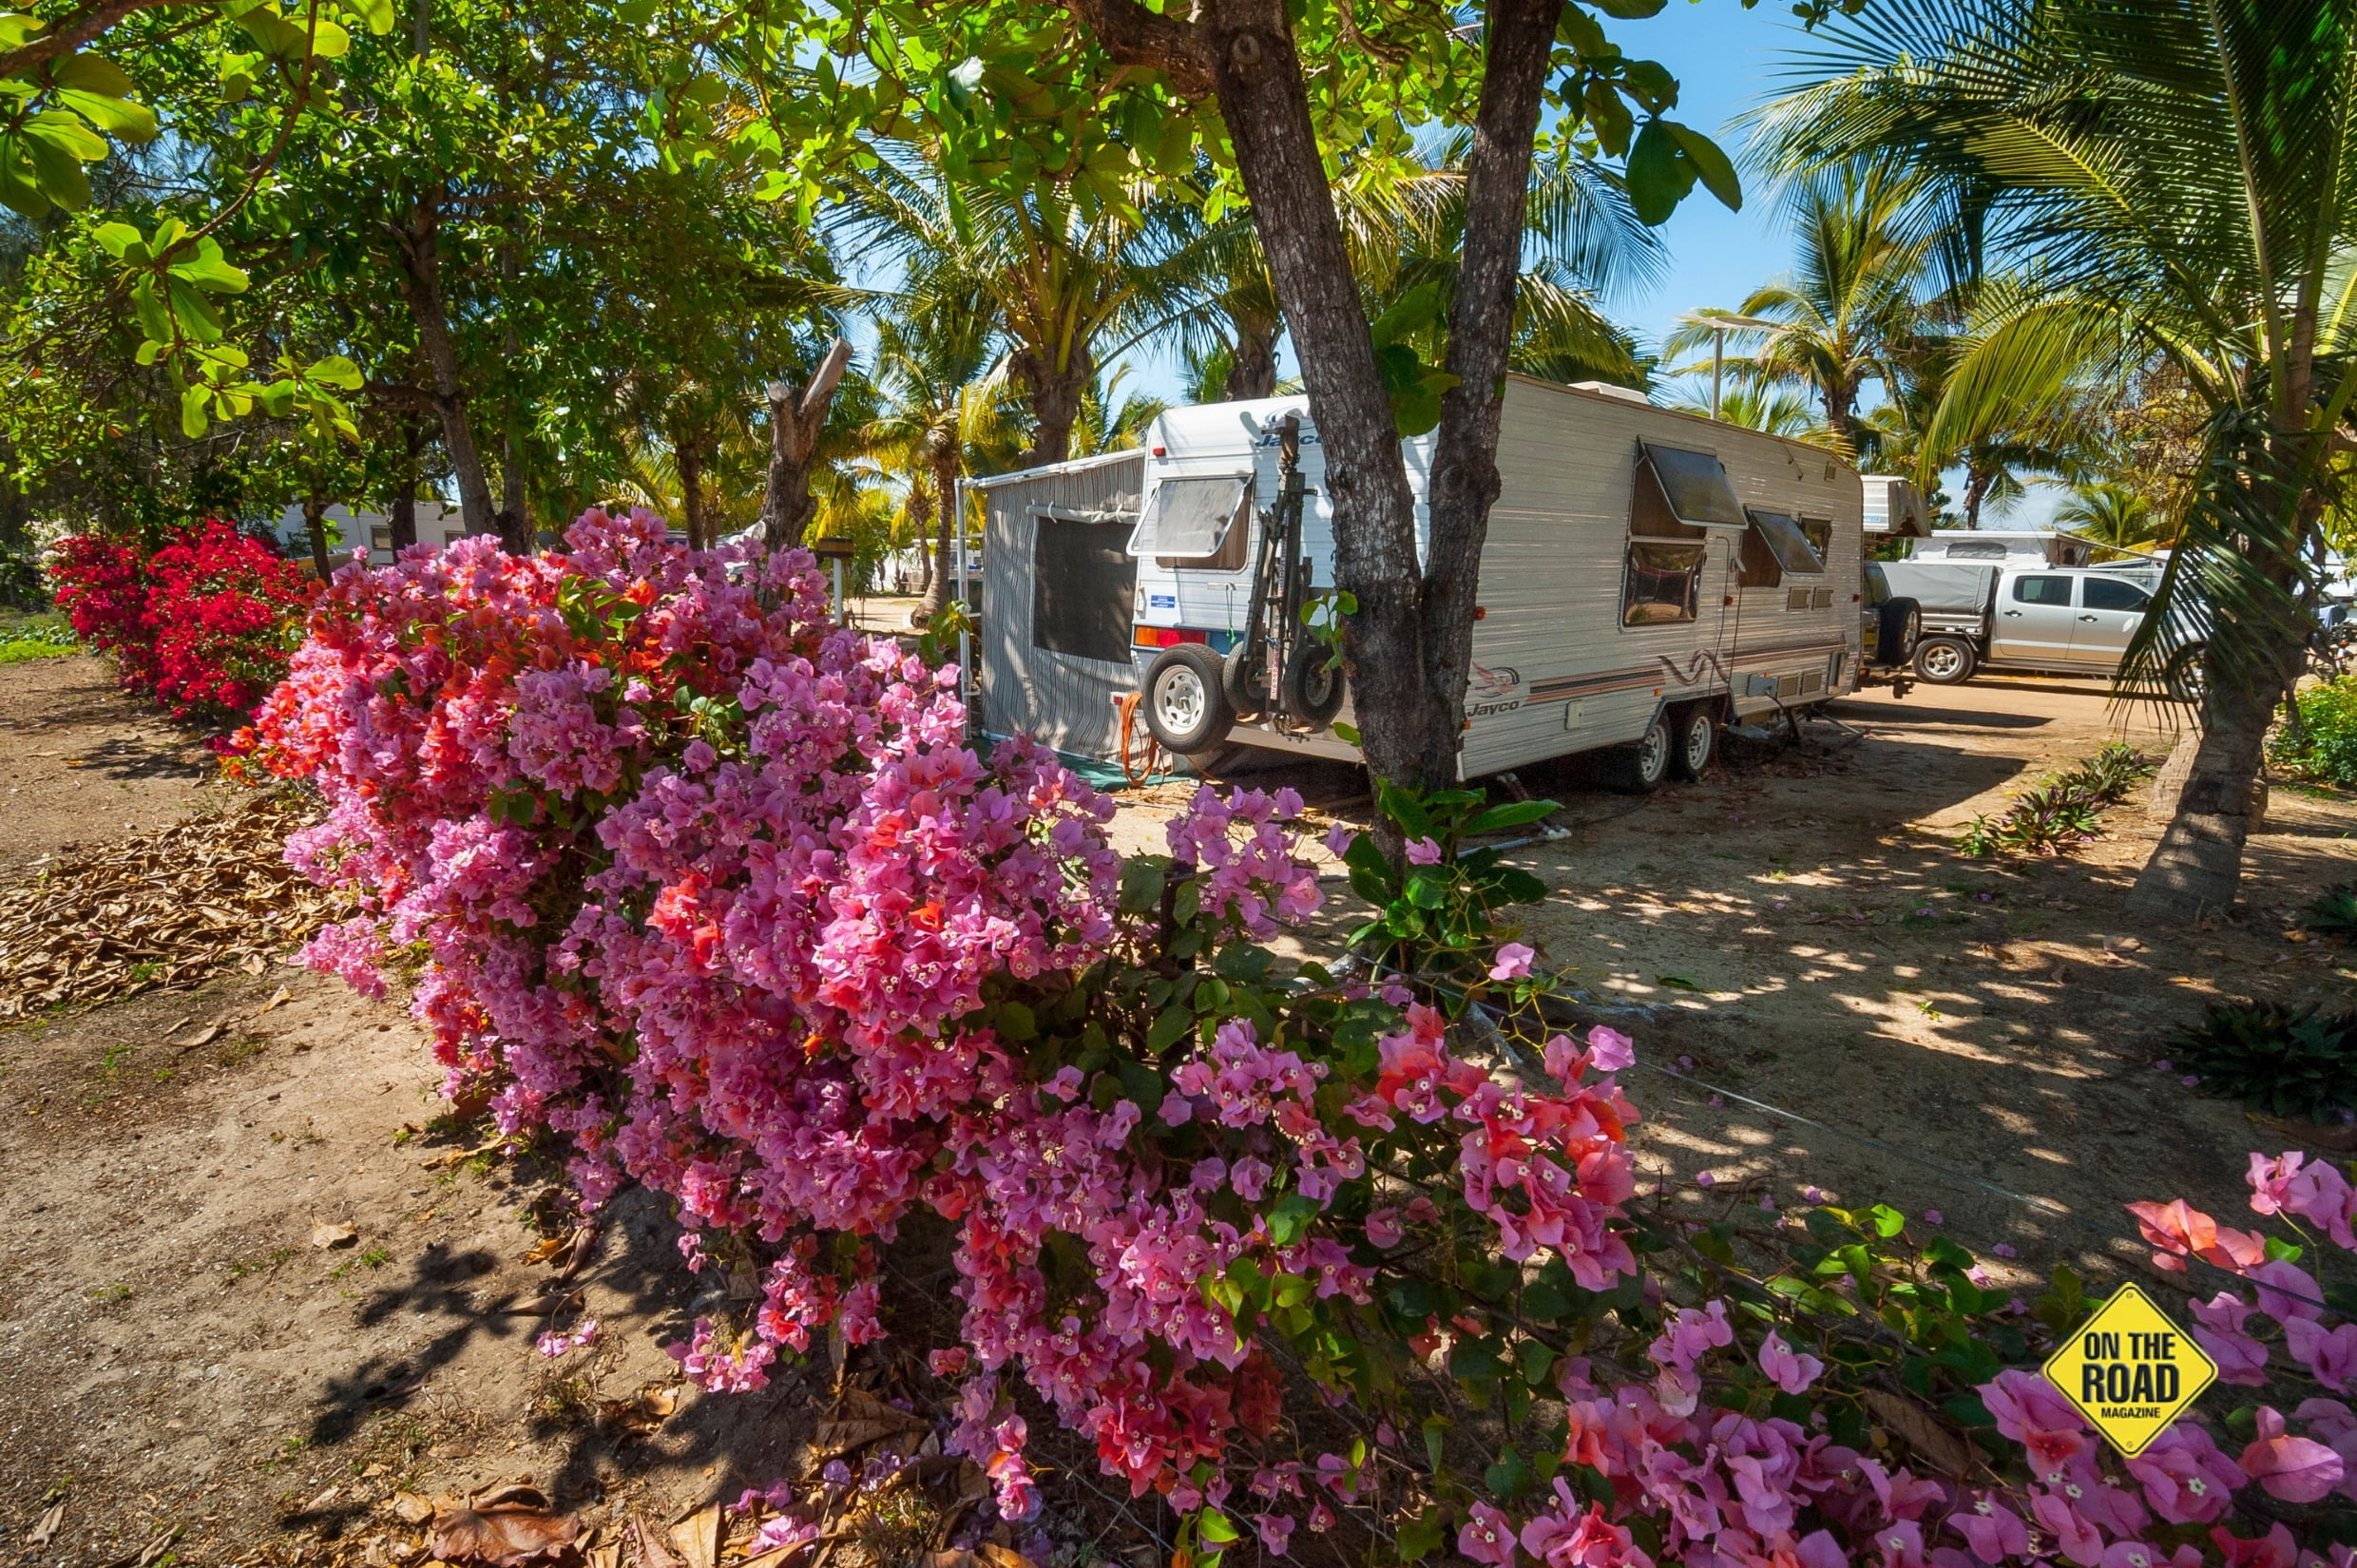 Karumbas five caravan parks fill up fast over the peak winter months.-min